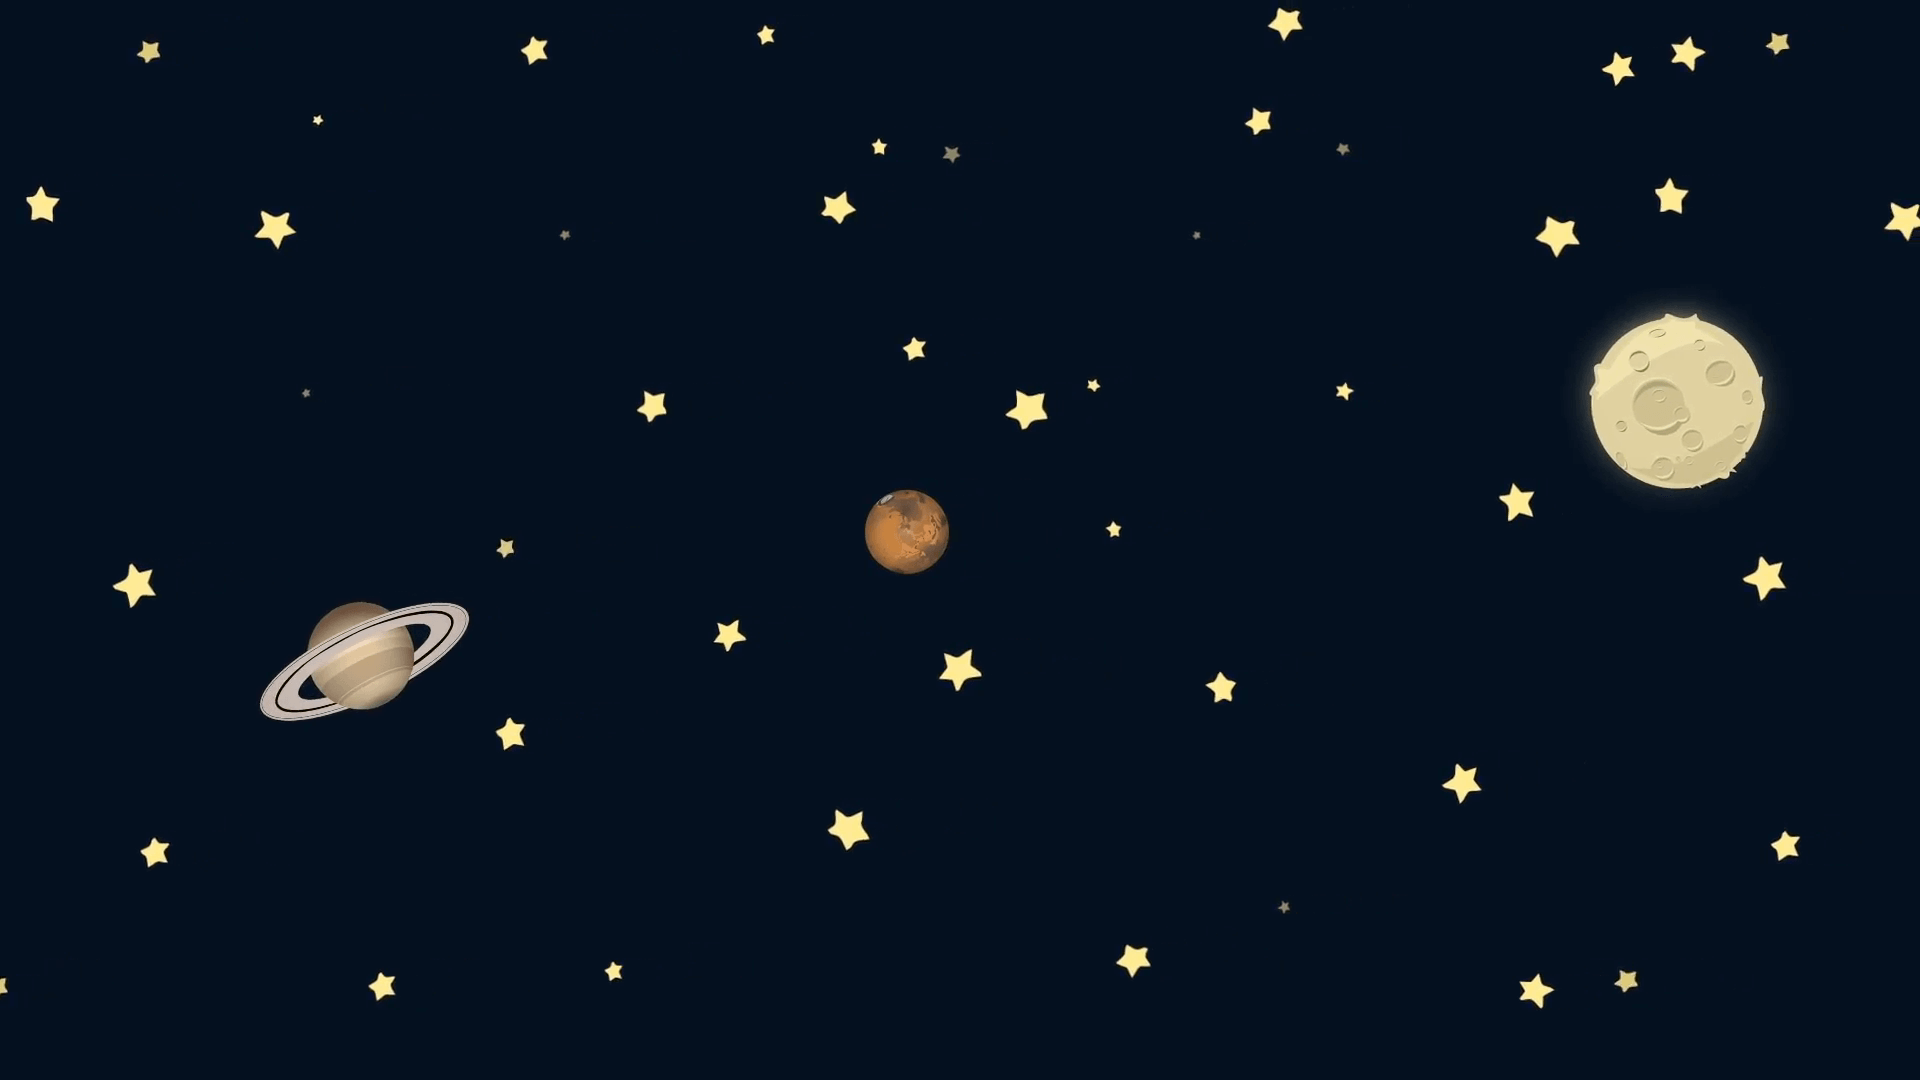 1920x1080 Cartoon Earth Saturn Mars and Moon in Space Motion Background ...